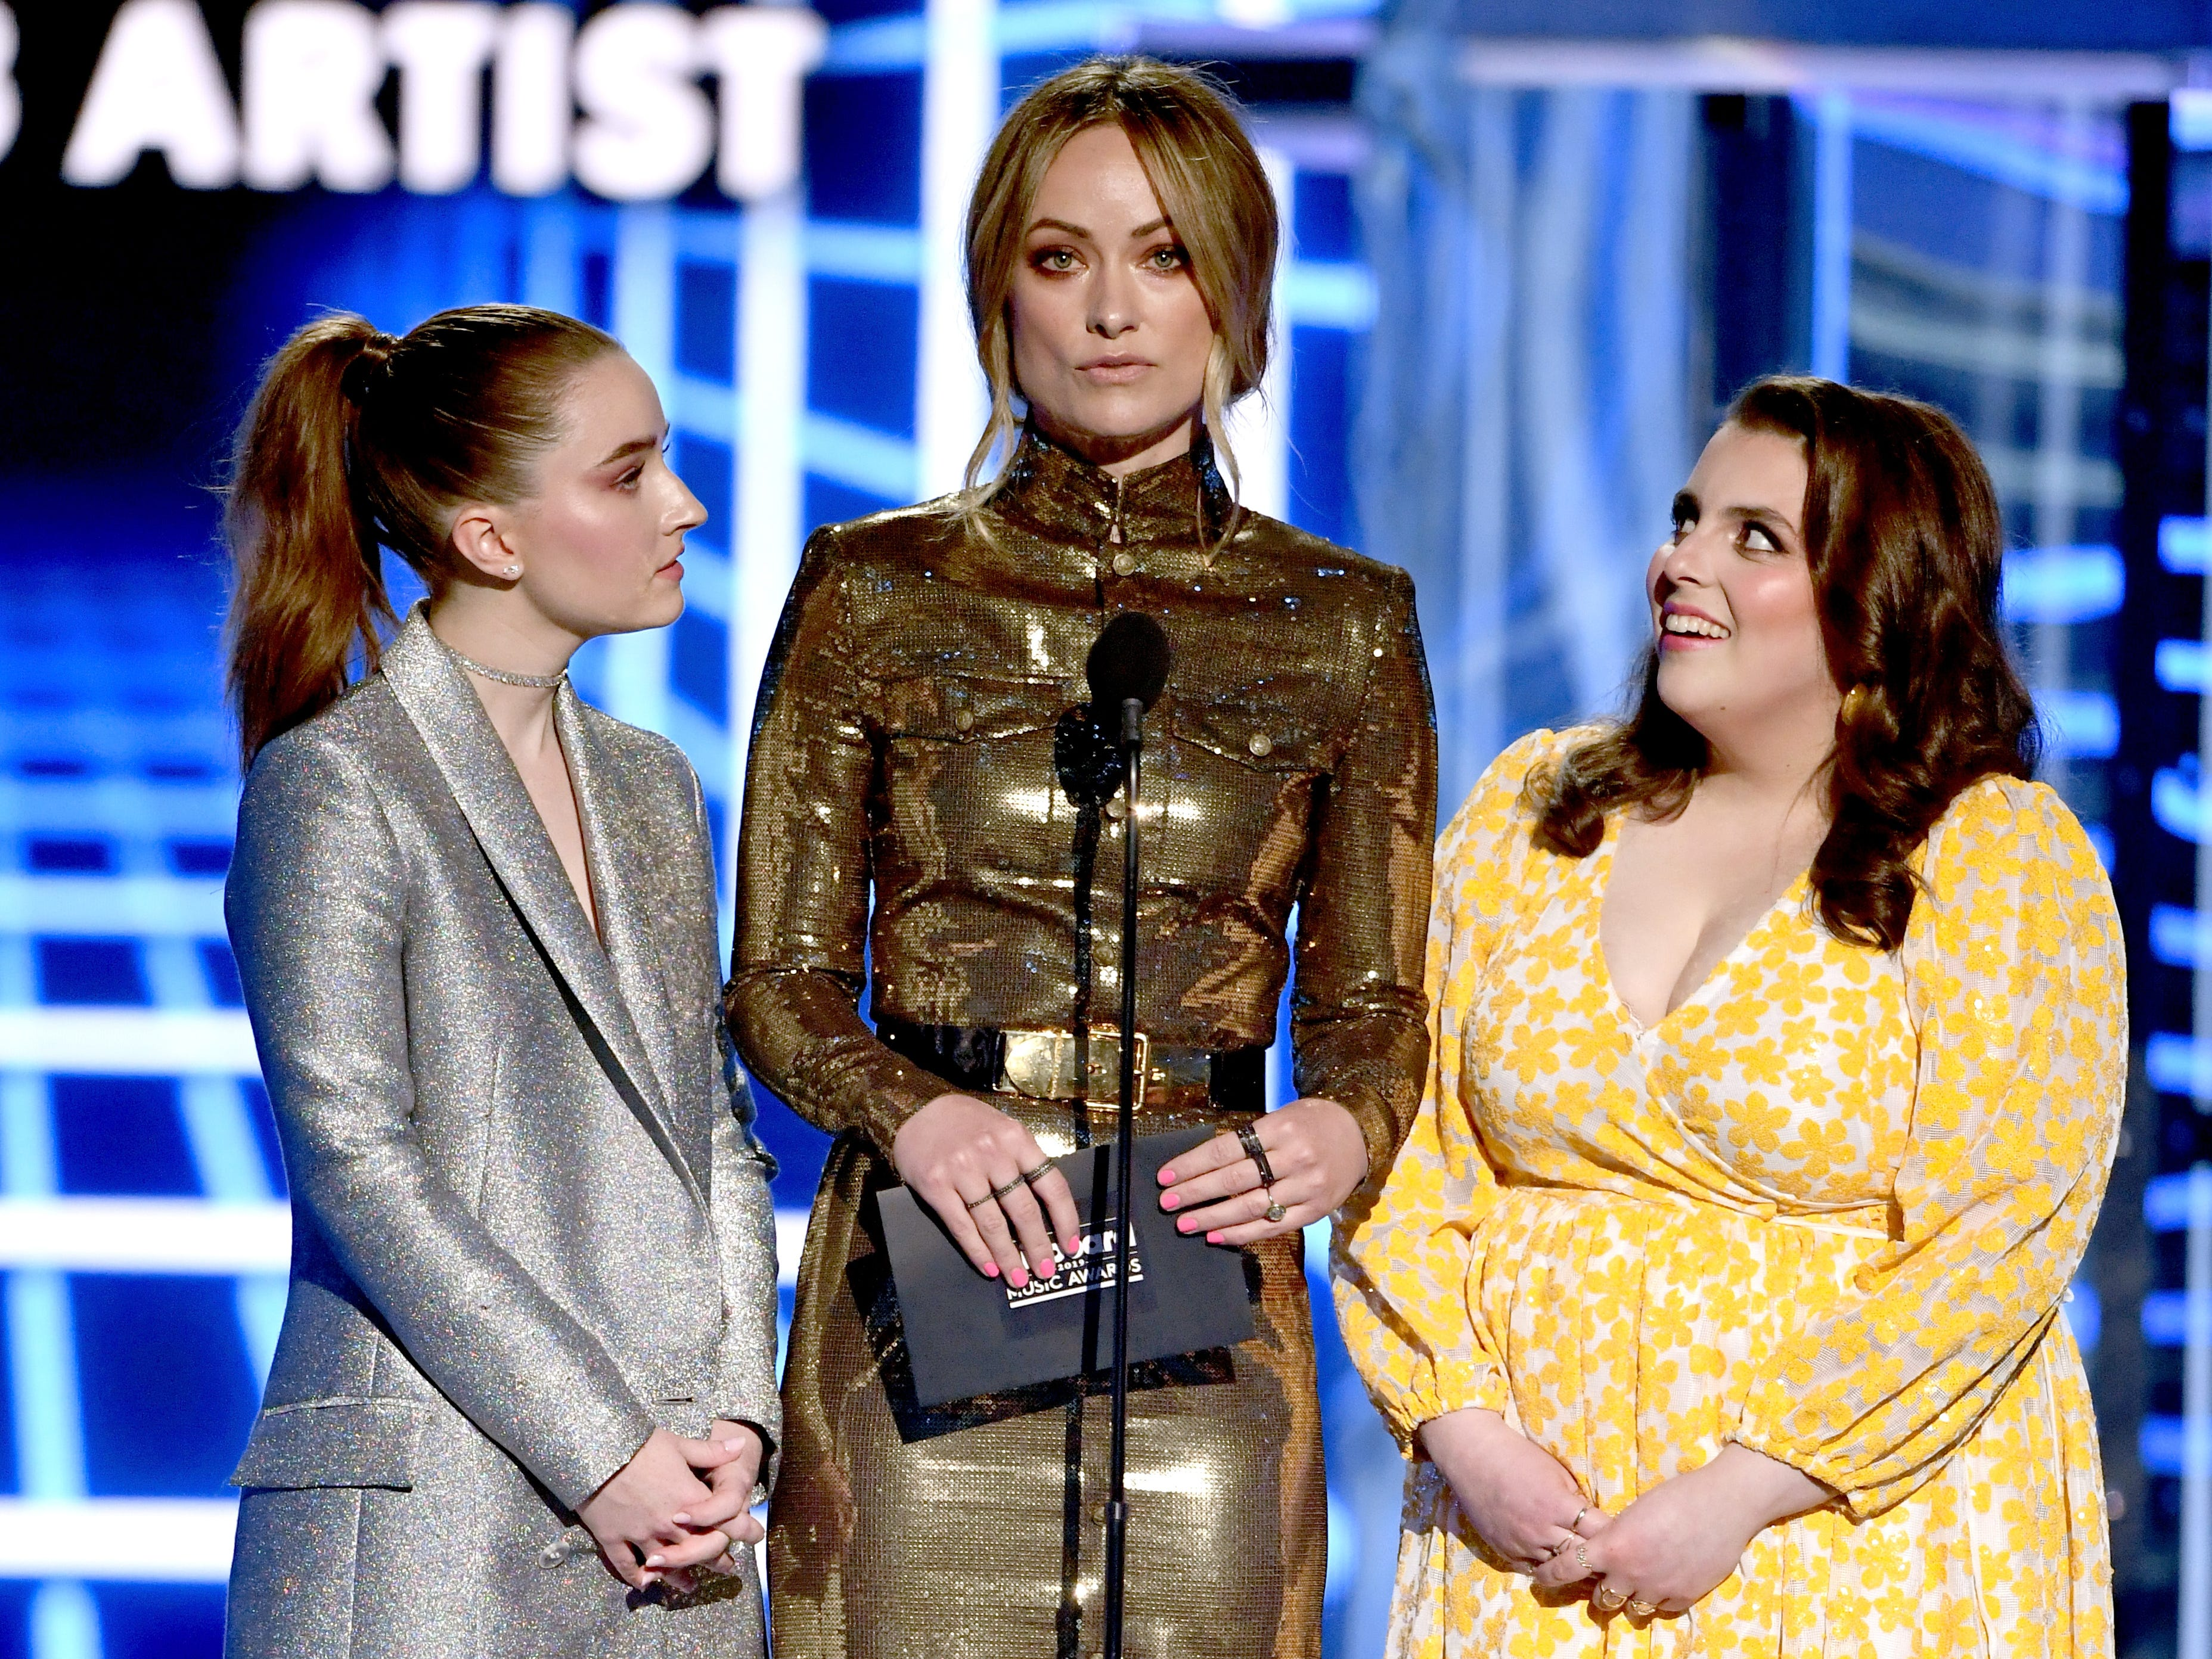 (L-R) Kaitlyn Dever, Olivia Wilde, and Beanie Feldstein speak onstage during the 2019 Billboard Music Awards at MGM Grand Garden Arena on May 1, 2019 in Las Vegas, Nevada.